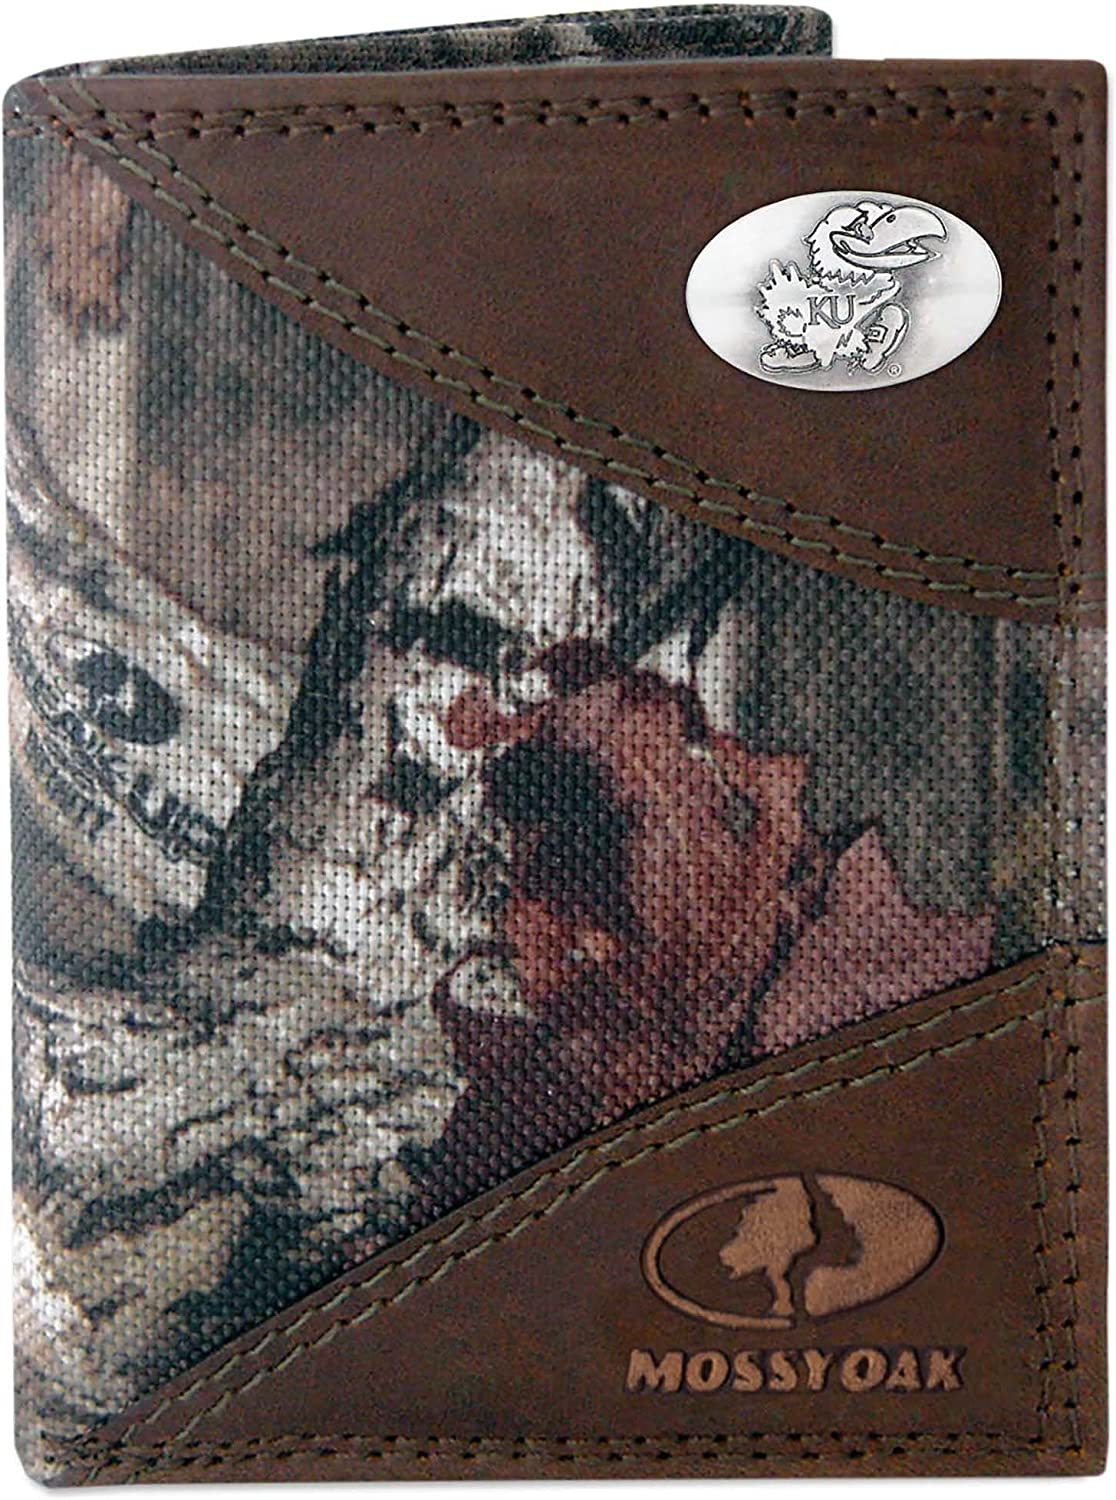 ZEP-PRO NCAA mens Zep-pro Mossy Oak Nylon and Leather Trifold Concho Wallet